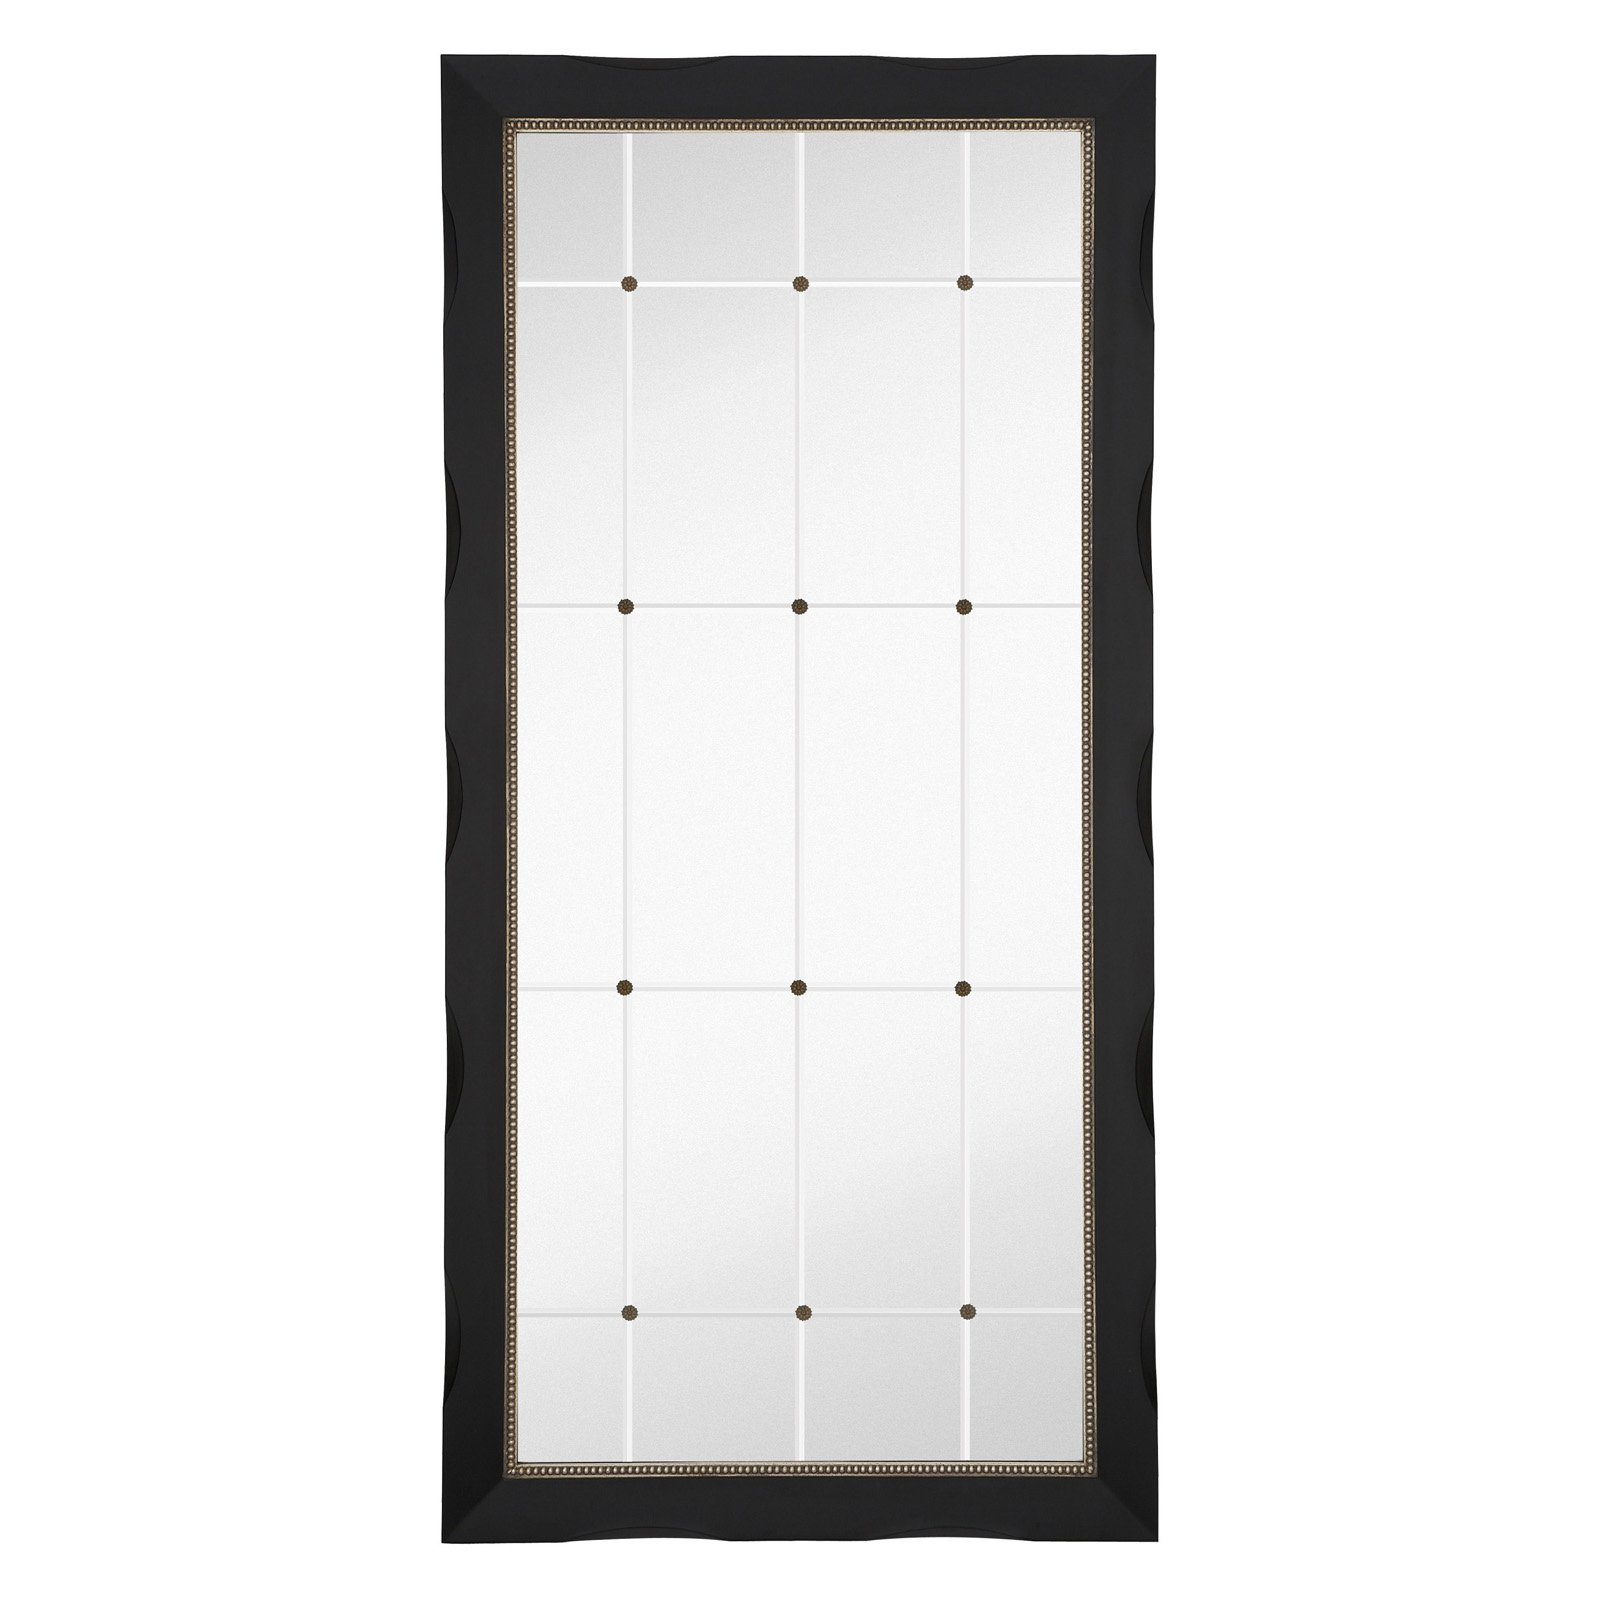 Majestic Black With Silver Lip Frame Floor Mirror by